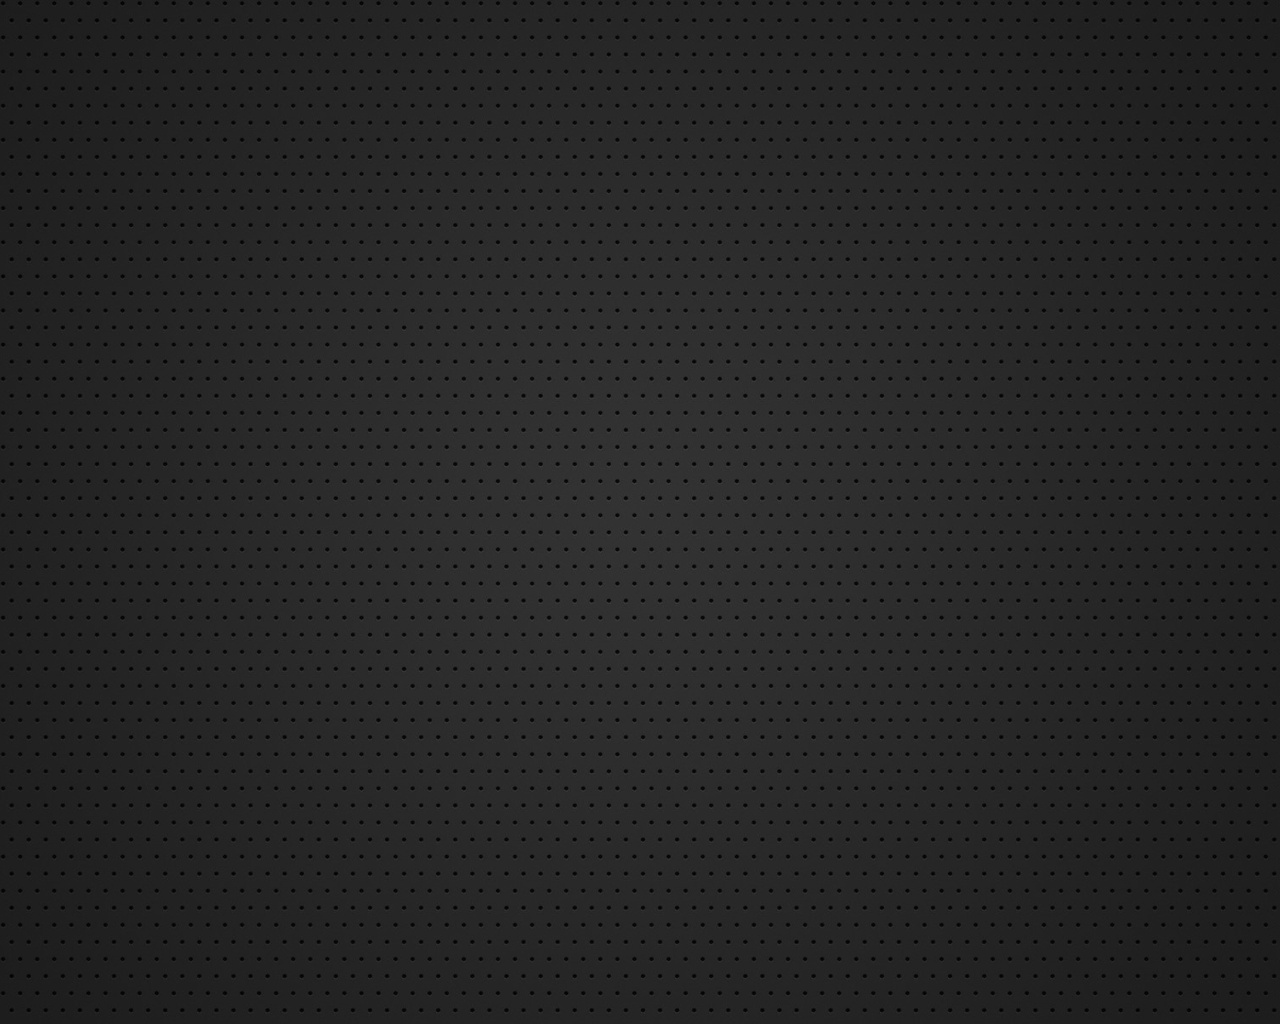 Matte Black Wallpaper Wallpapersafari